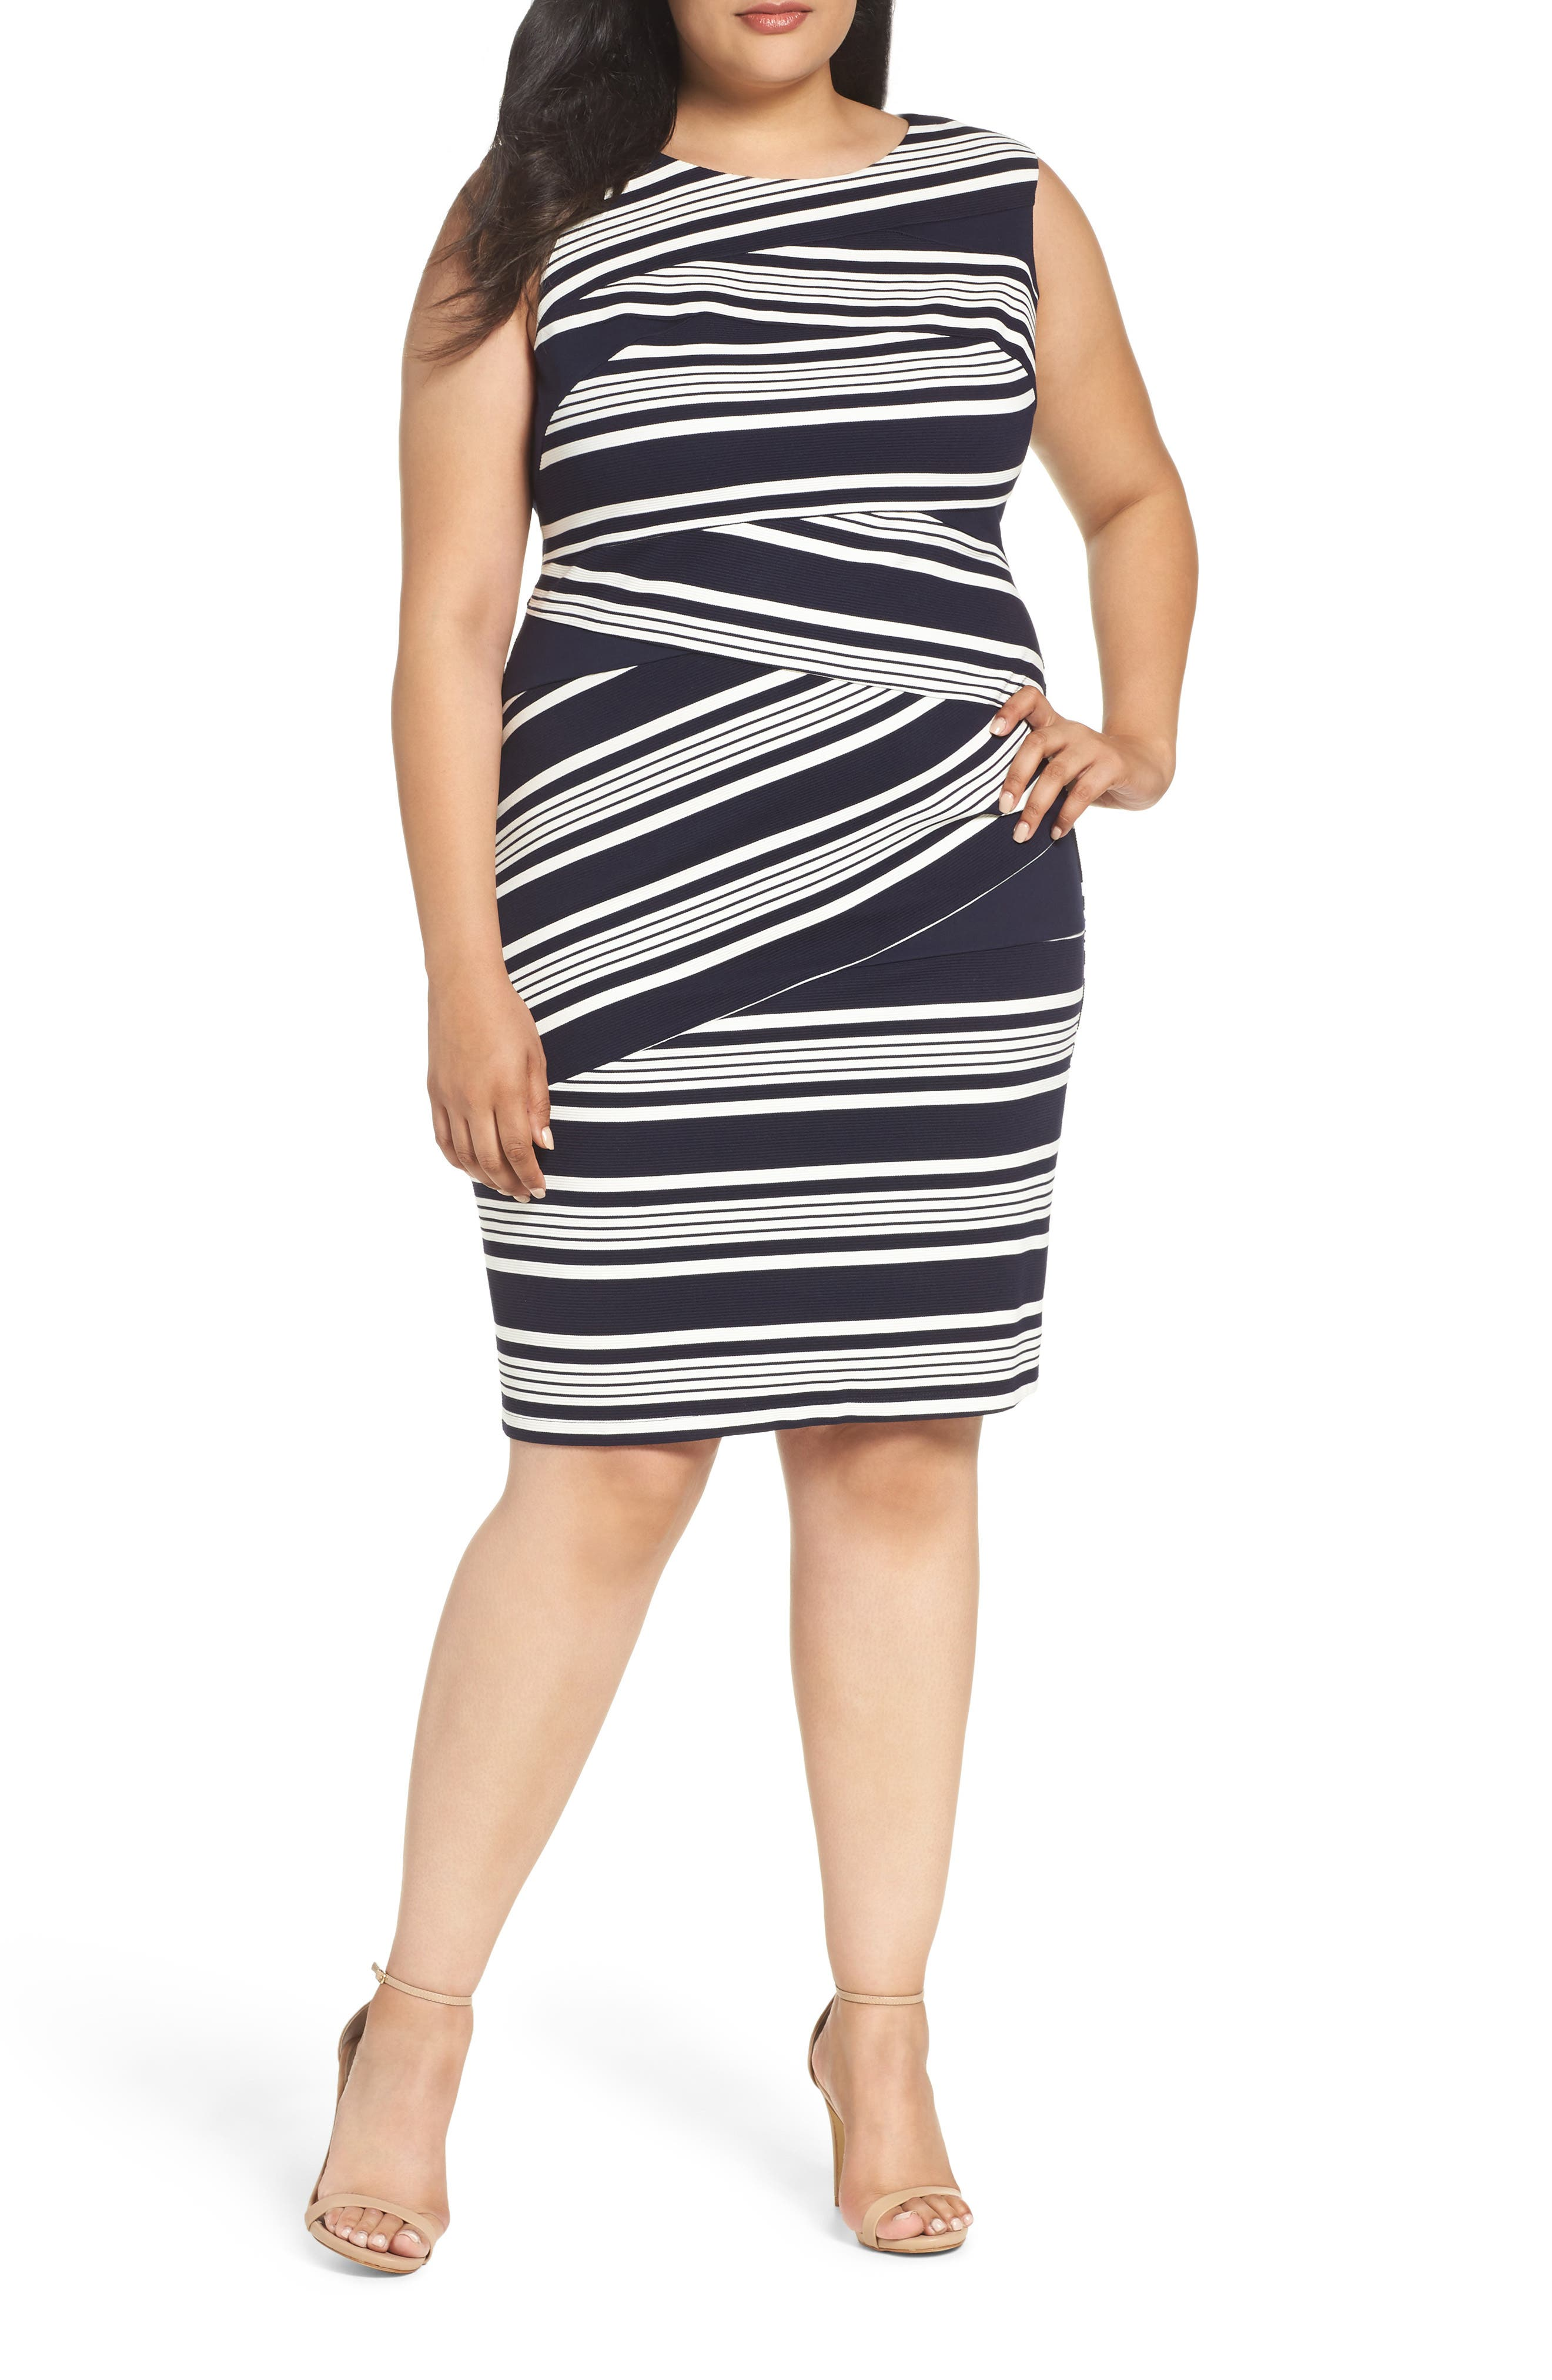 Alternate Image 1 Selected - Adrianna Papell Stripe Body-Con Dress (Plus Size)